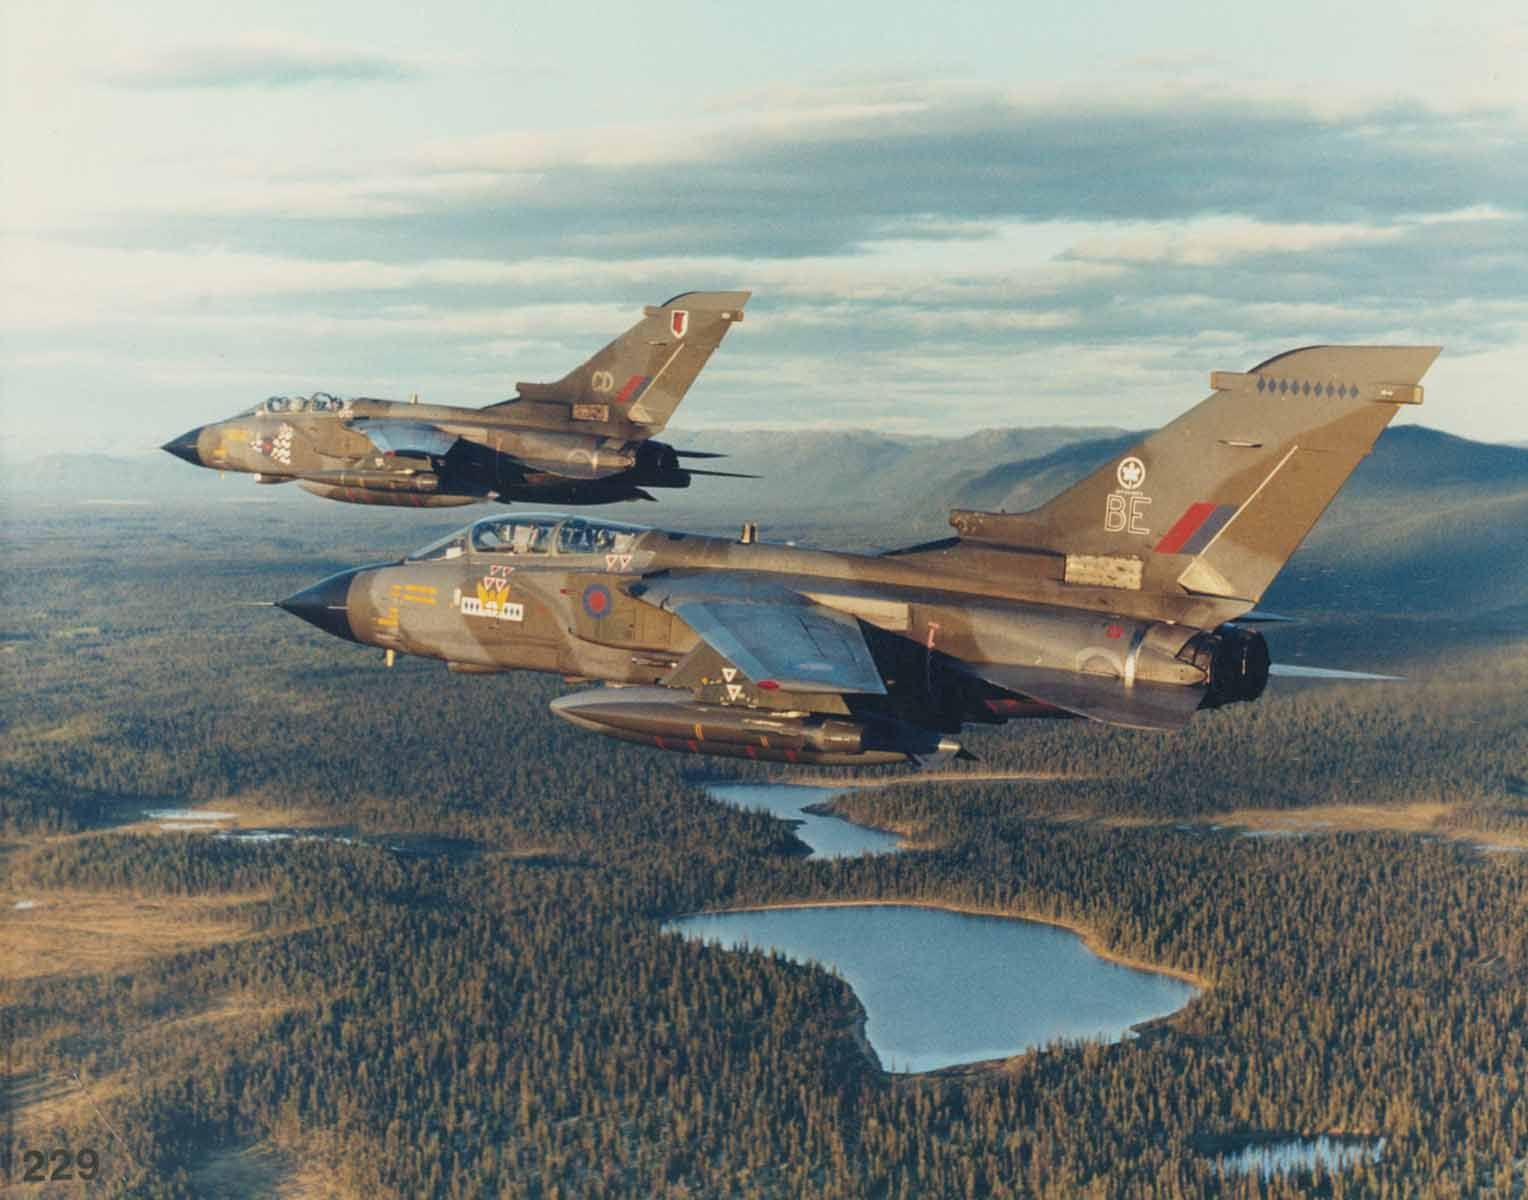 Two Panavia Tornados over Canada on Exercise Maple Flag